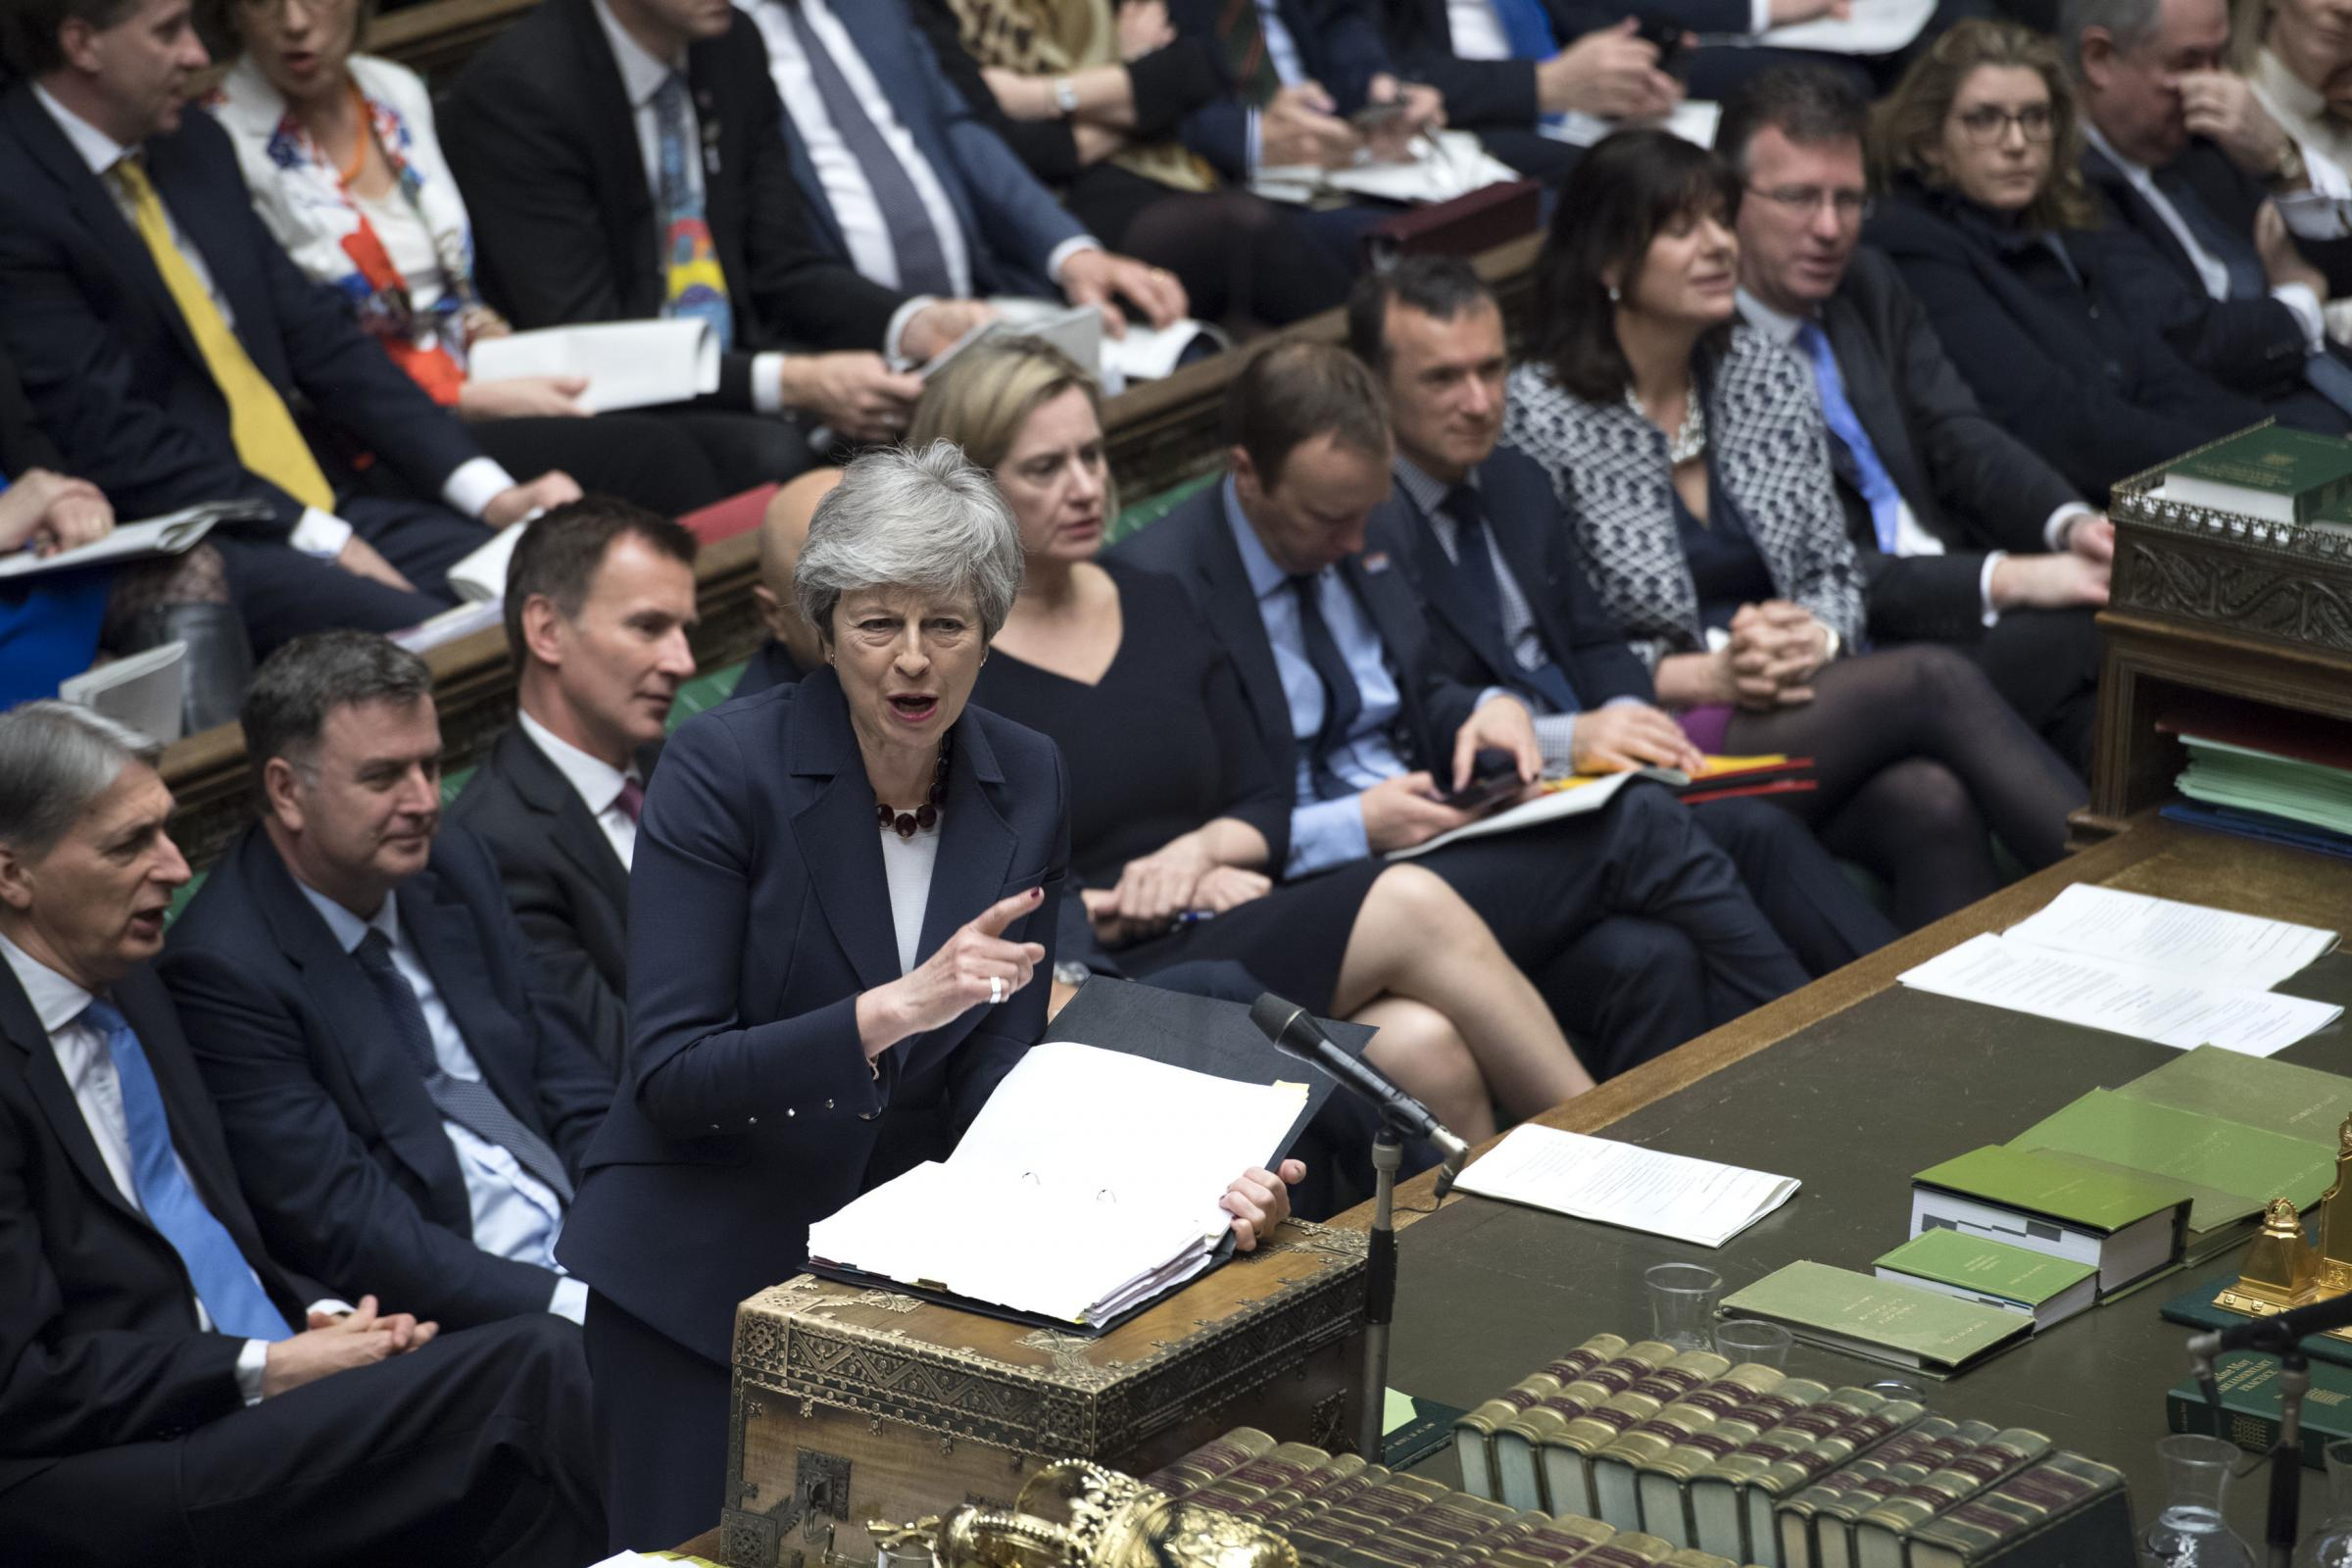 Prime Minister Theresa May during Prime Minister's Questions in the House of Commons, London. Picture: UK Parliament/Jessica Taylor /PA Wire